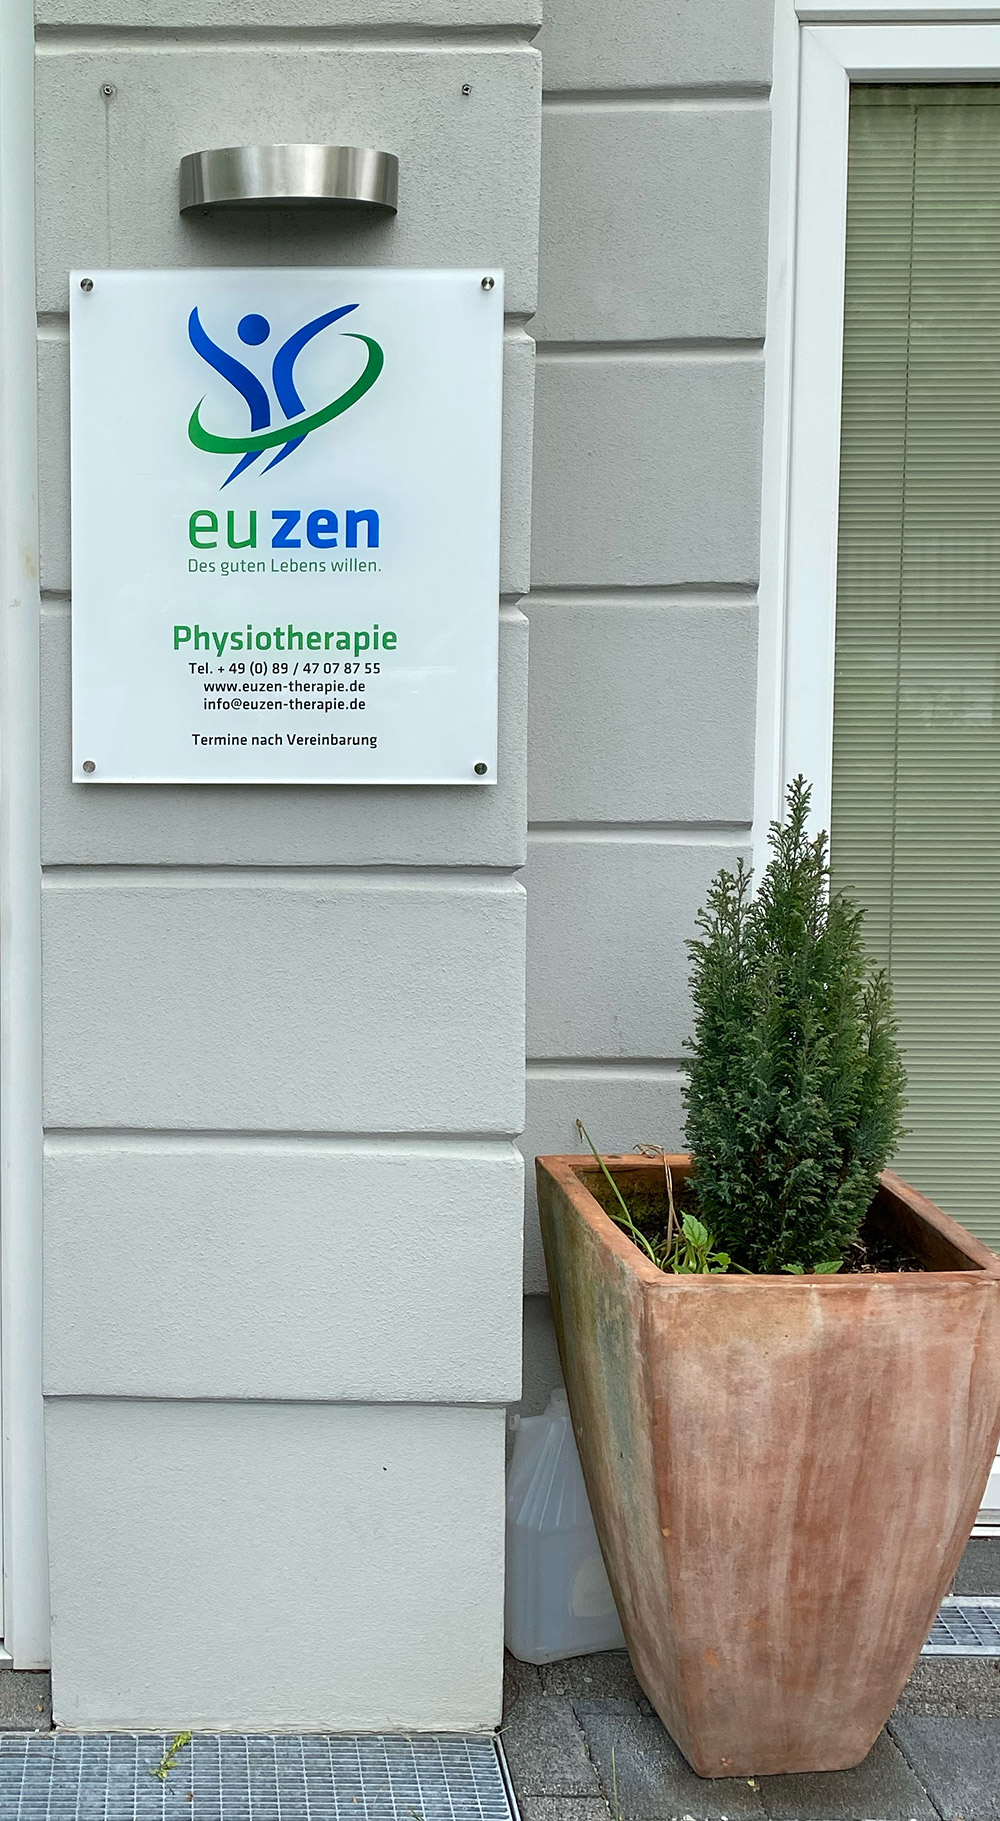 Bottega Design Referenz Illustration Praxisschild für Euzen Physiotherapie